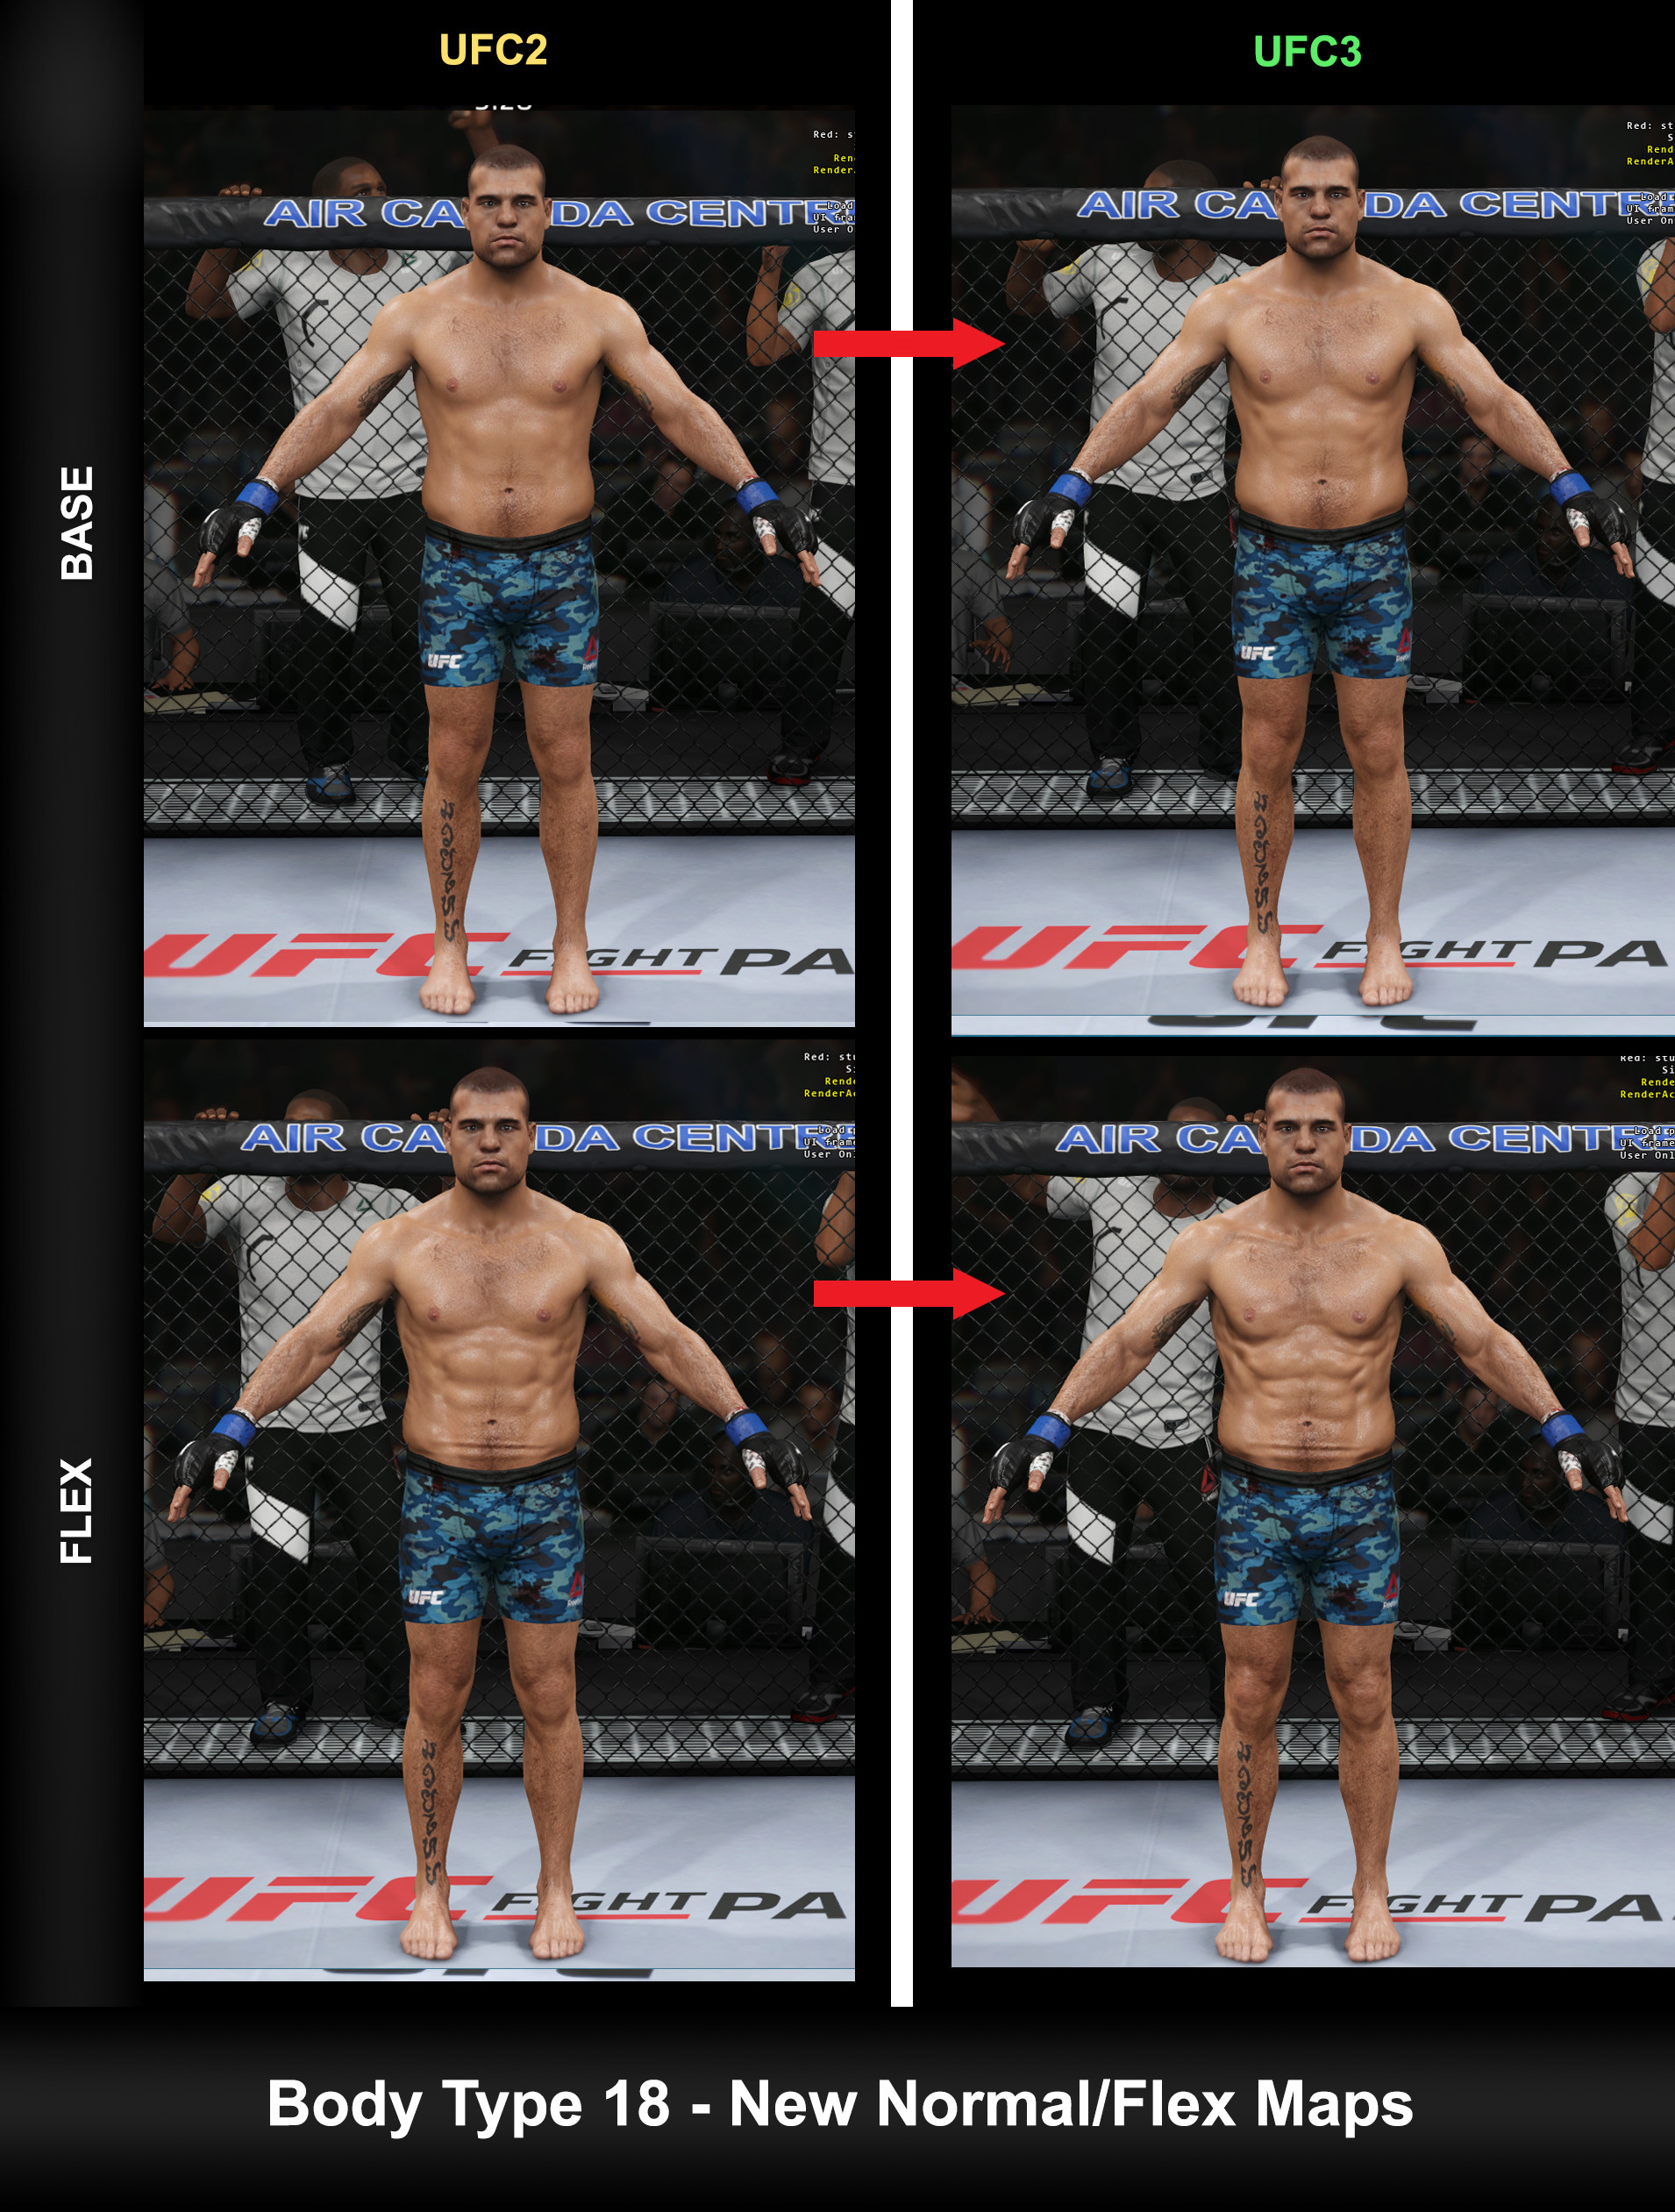 Fabricio rezende ufc3 body type 18 in game